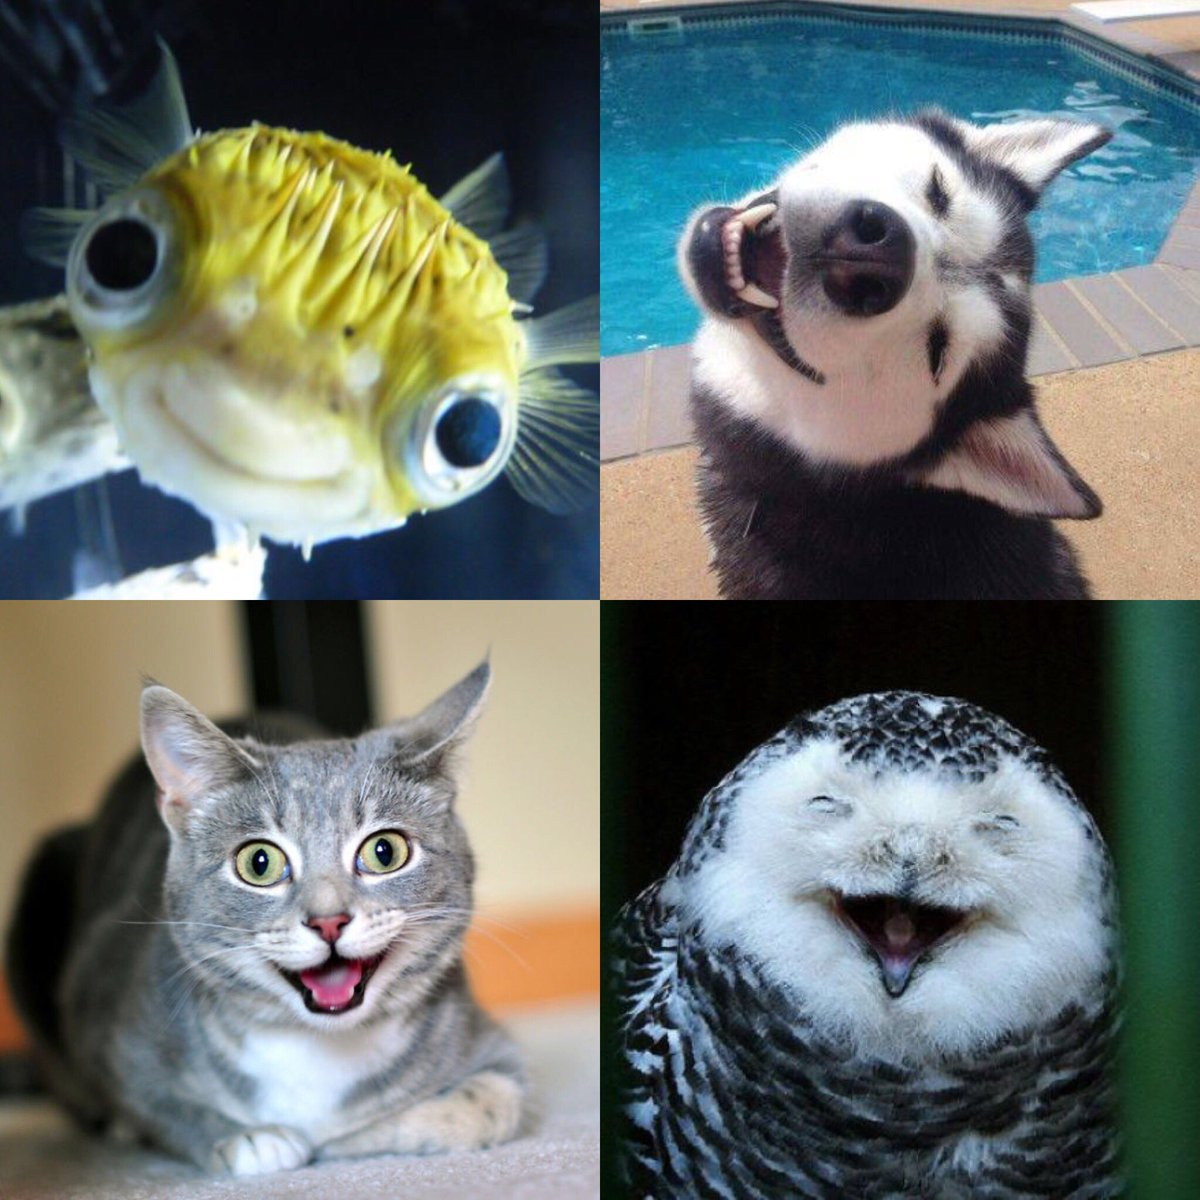 SMILE #happy #smile #smiley #smiling #dogs #cat #birds #fish #petshop <br>http://pic.twitter.com/GRIU9ulxhN